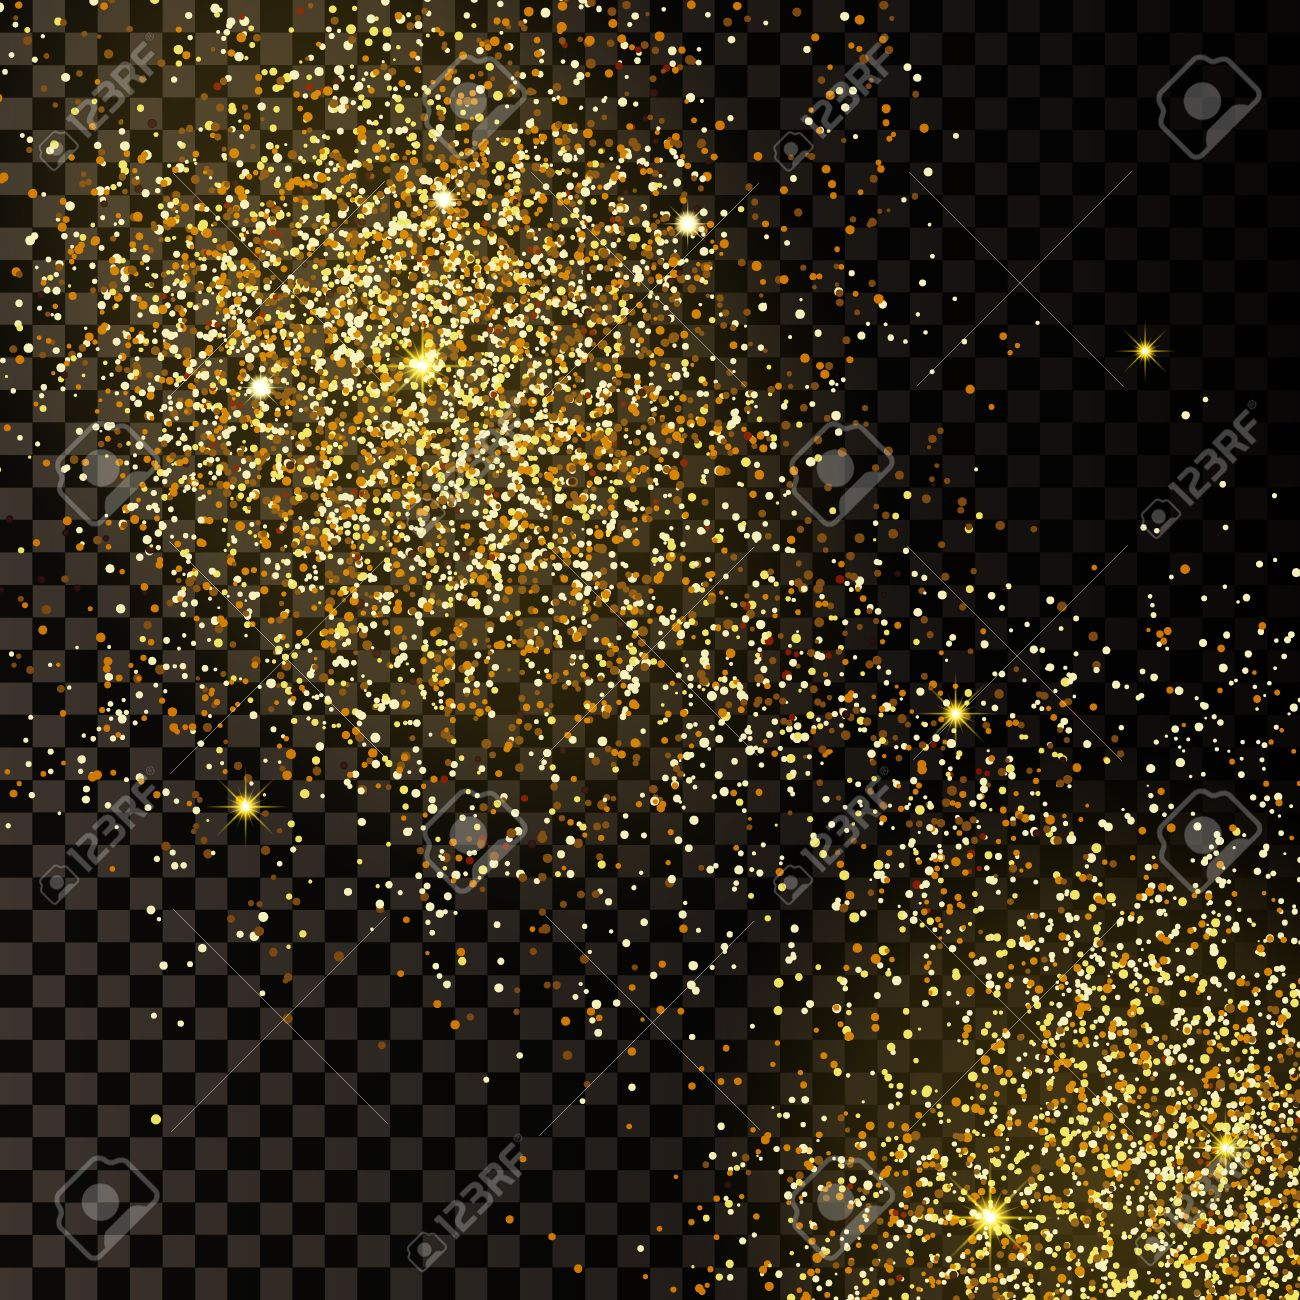 Gold glitter bright vector transparent background golden sparkles - Vector Vector Illustration Of Golden Confetti Background For Design Website Background Banner Gold Sparkle Element For Greeting Card Or Premium Flyer